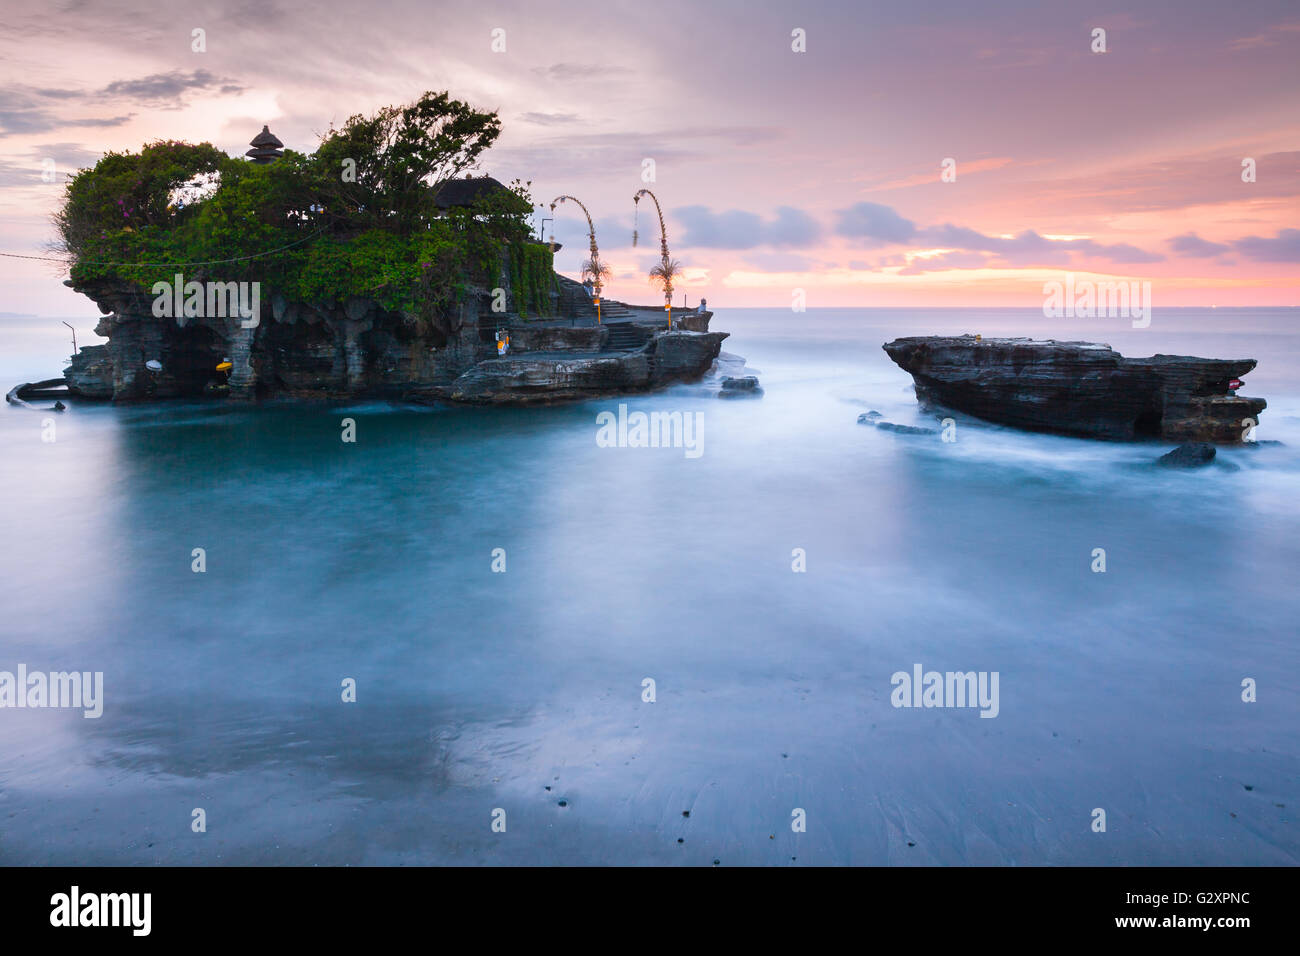 Pura Tanah Lot at sunset, famous ocean temple in Bali, Indonesia. - Stock Image